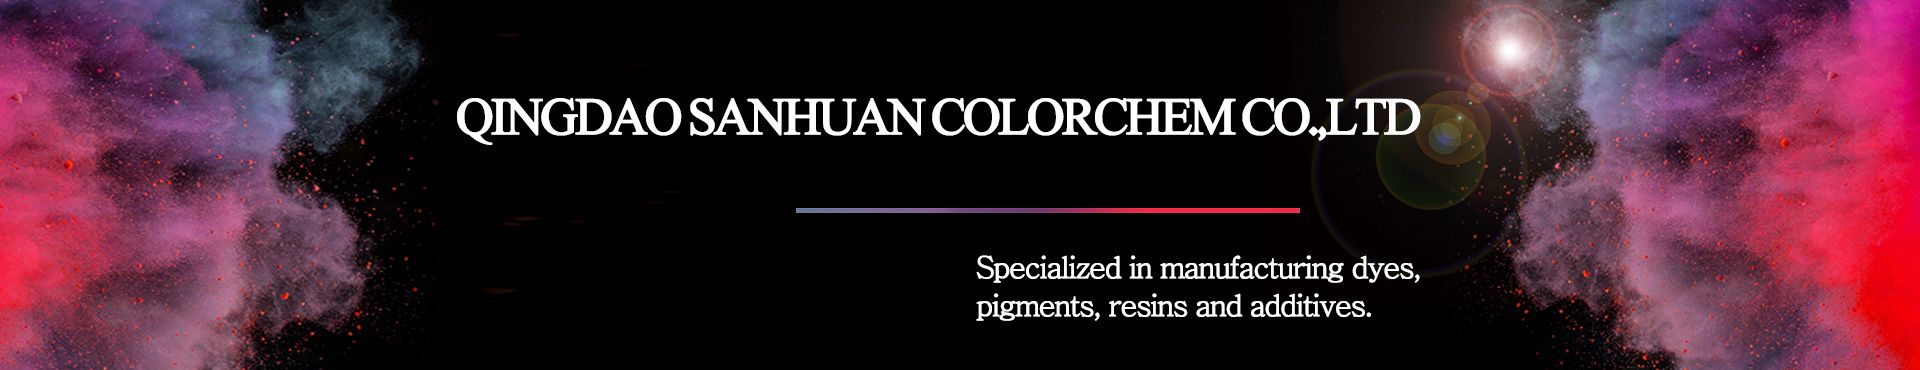 Qingdao Sanhuan Colorchem CO.,LTD